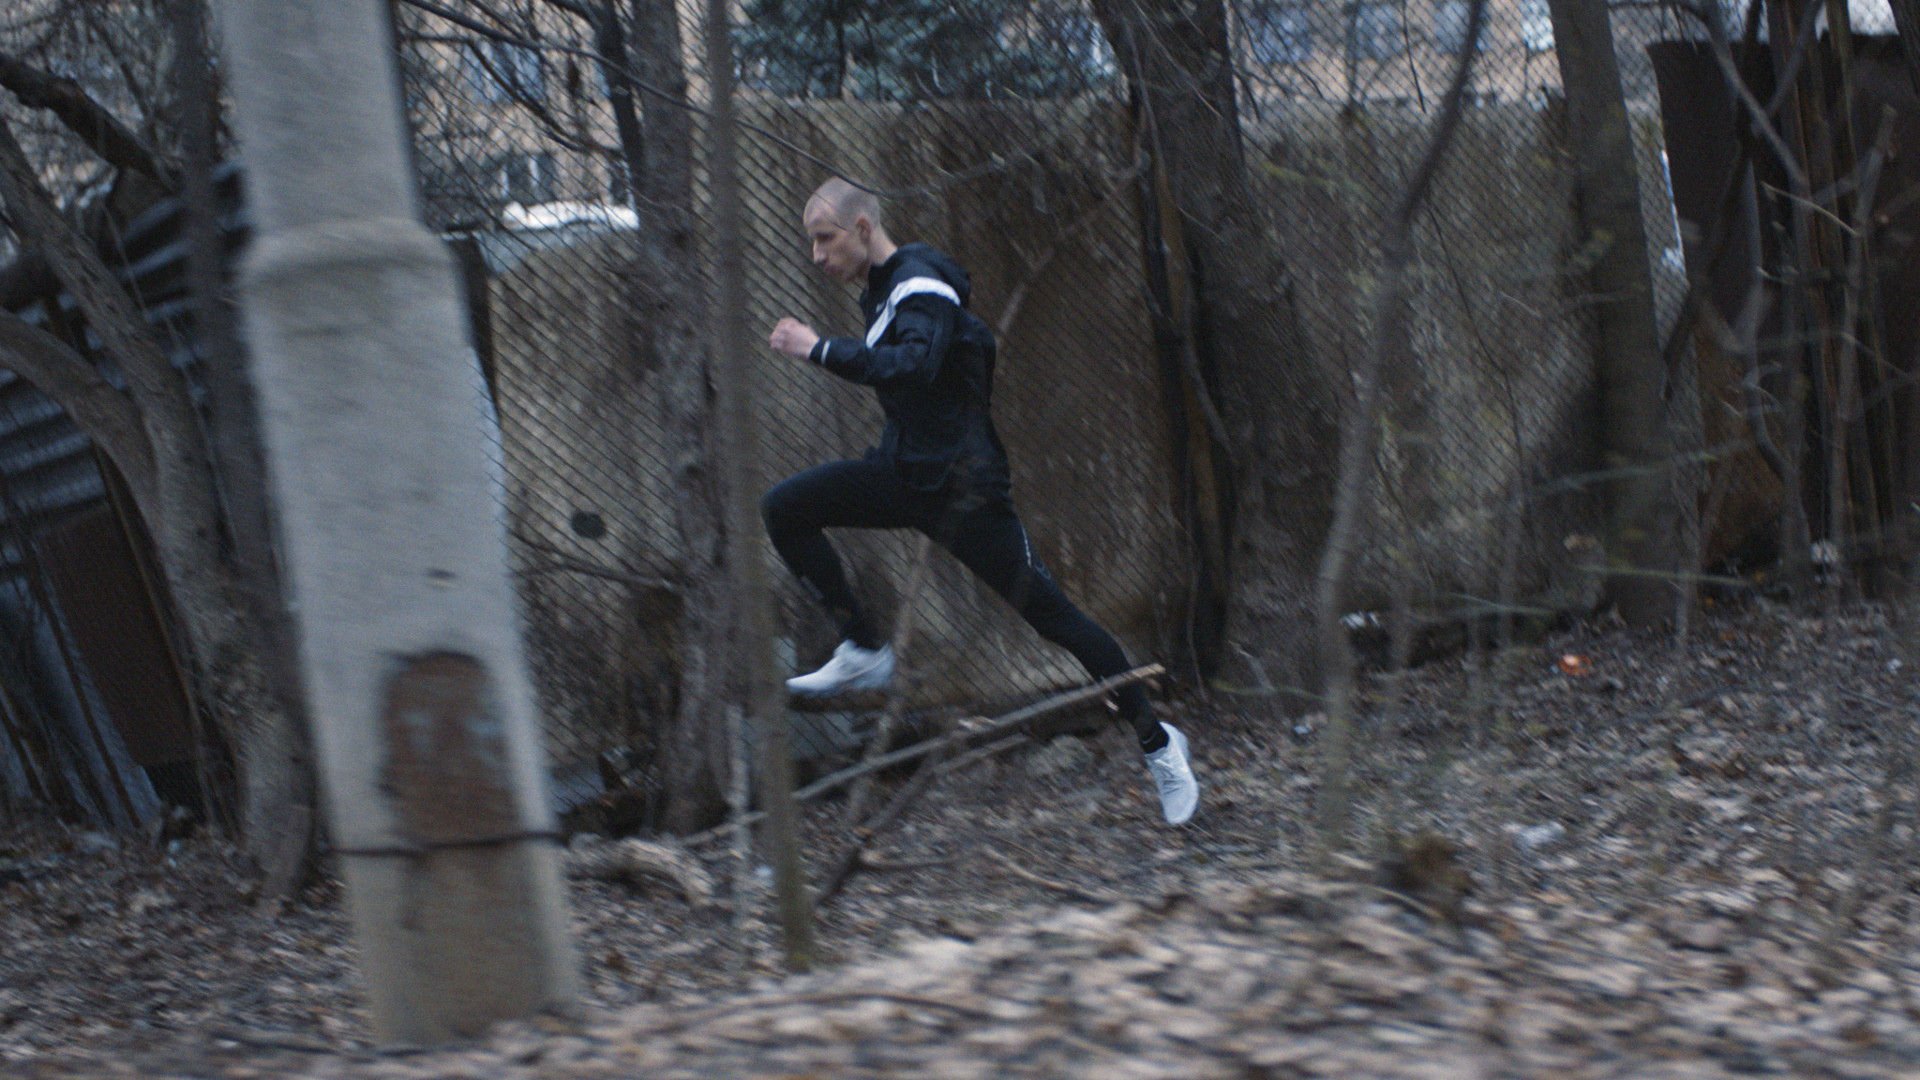 Nike - Everything Starts With A Run __ Sever-0623